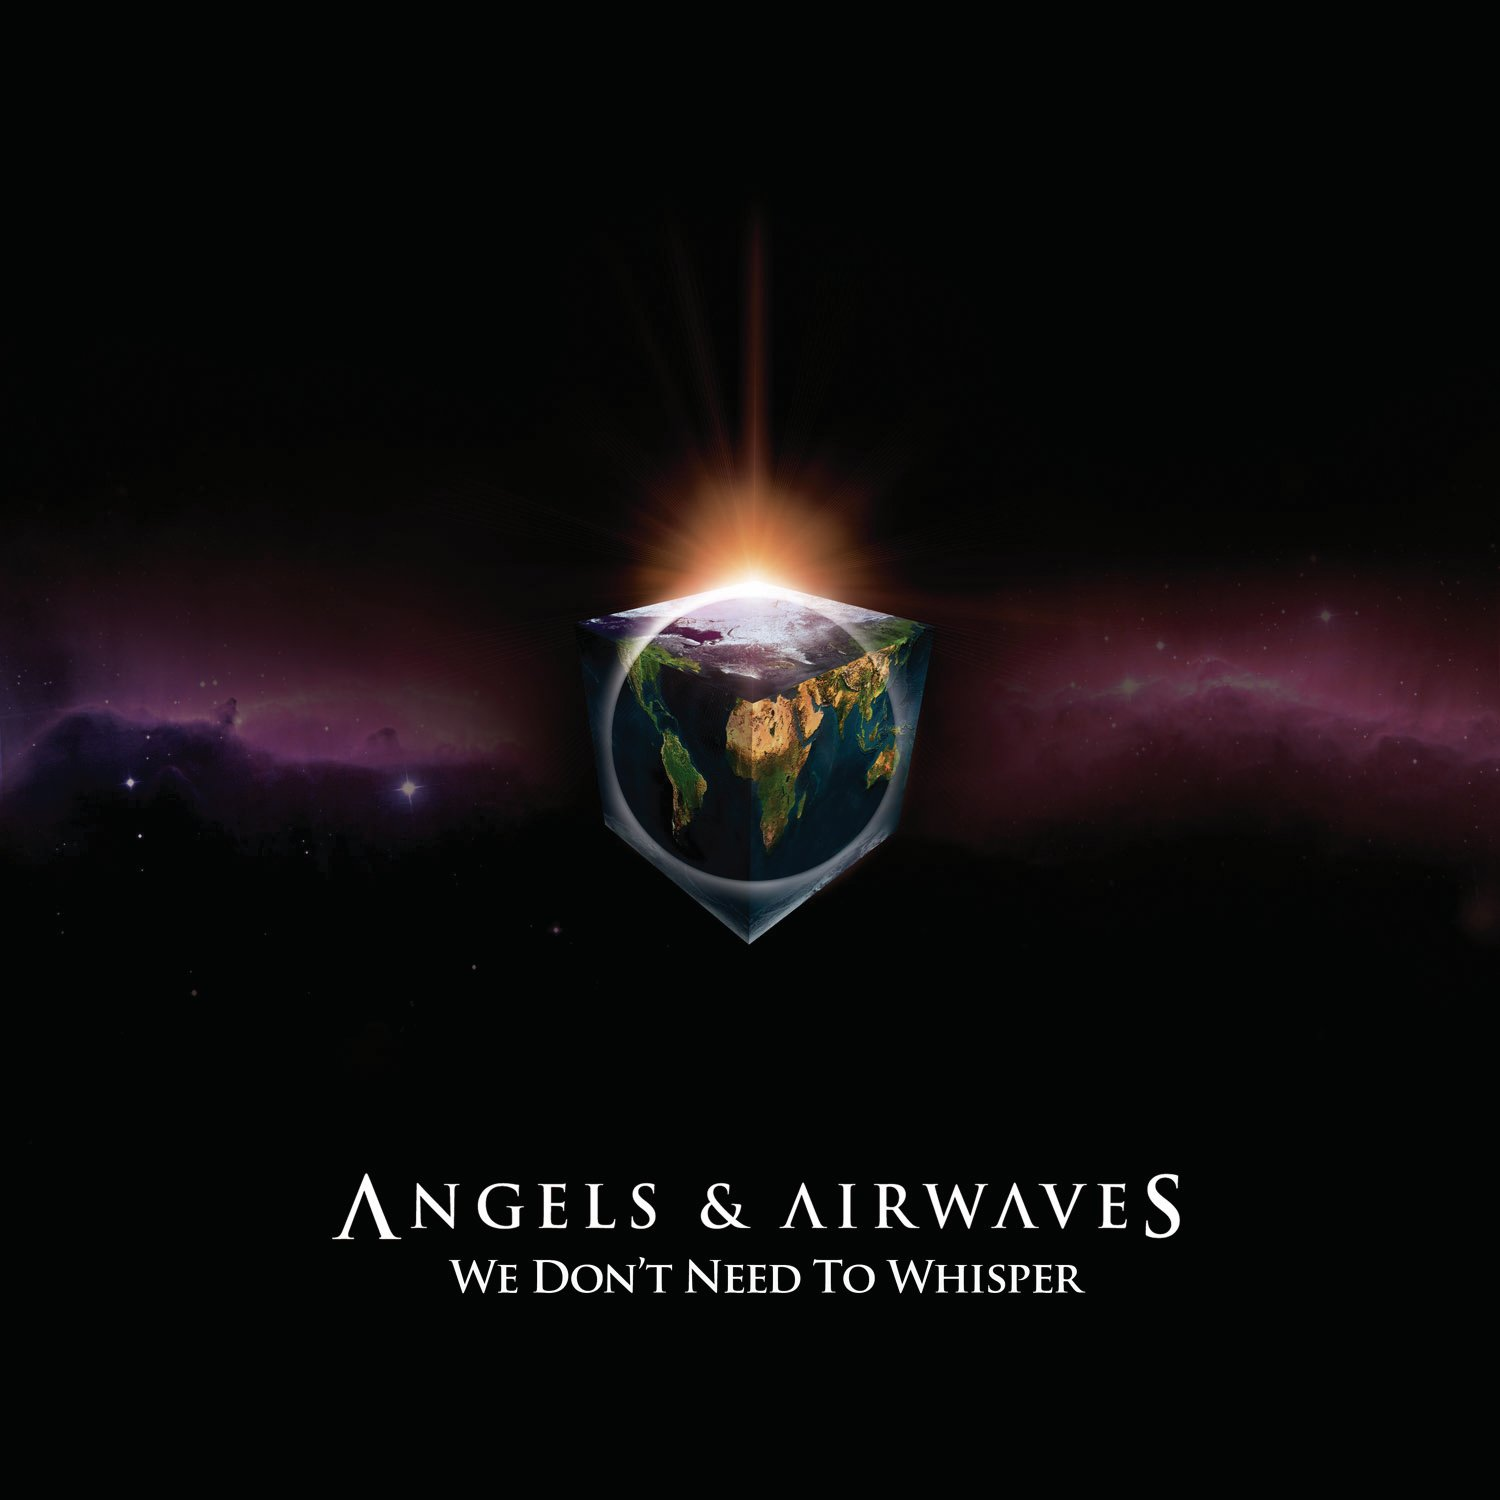 angels and airwaves we dont